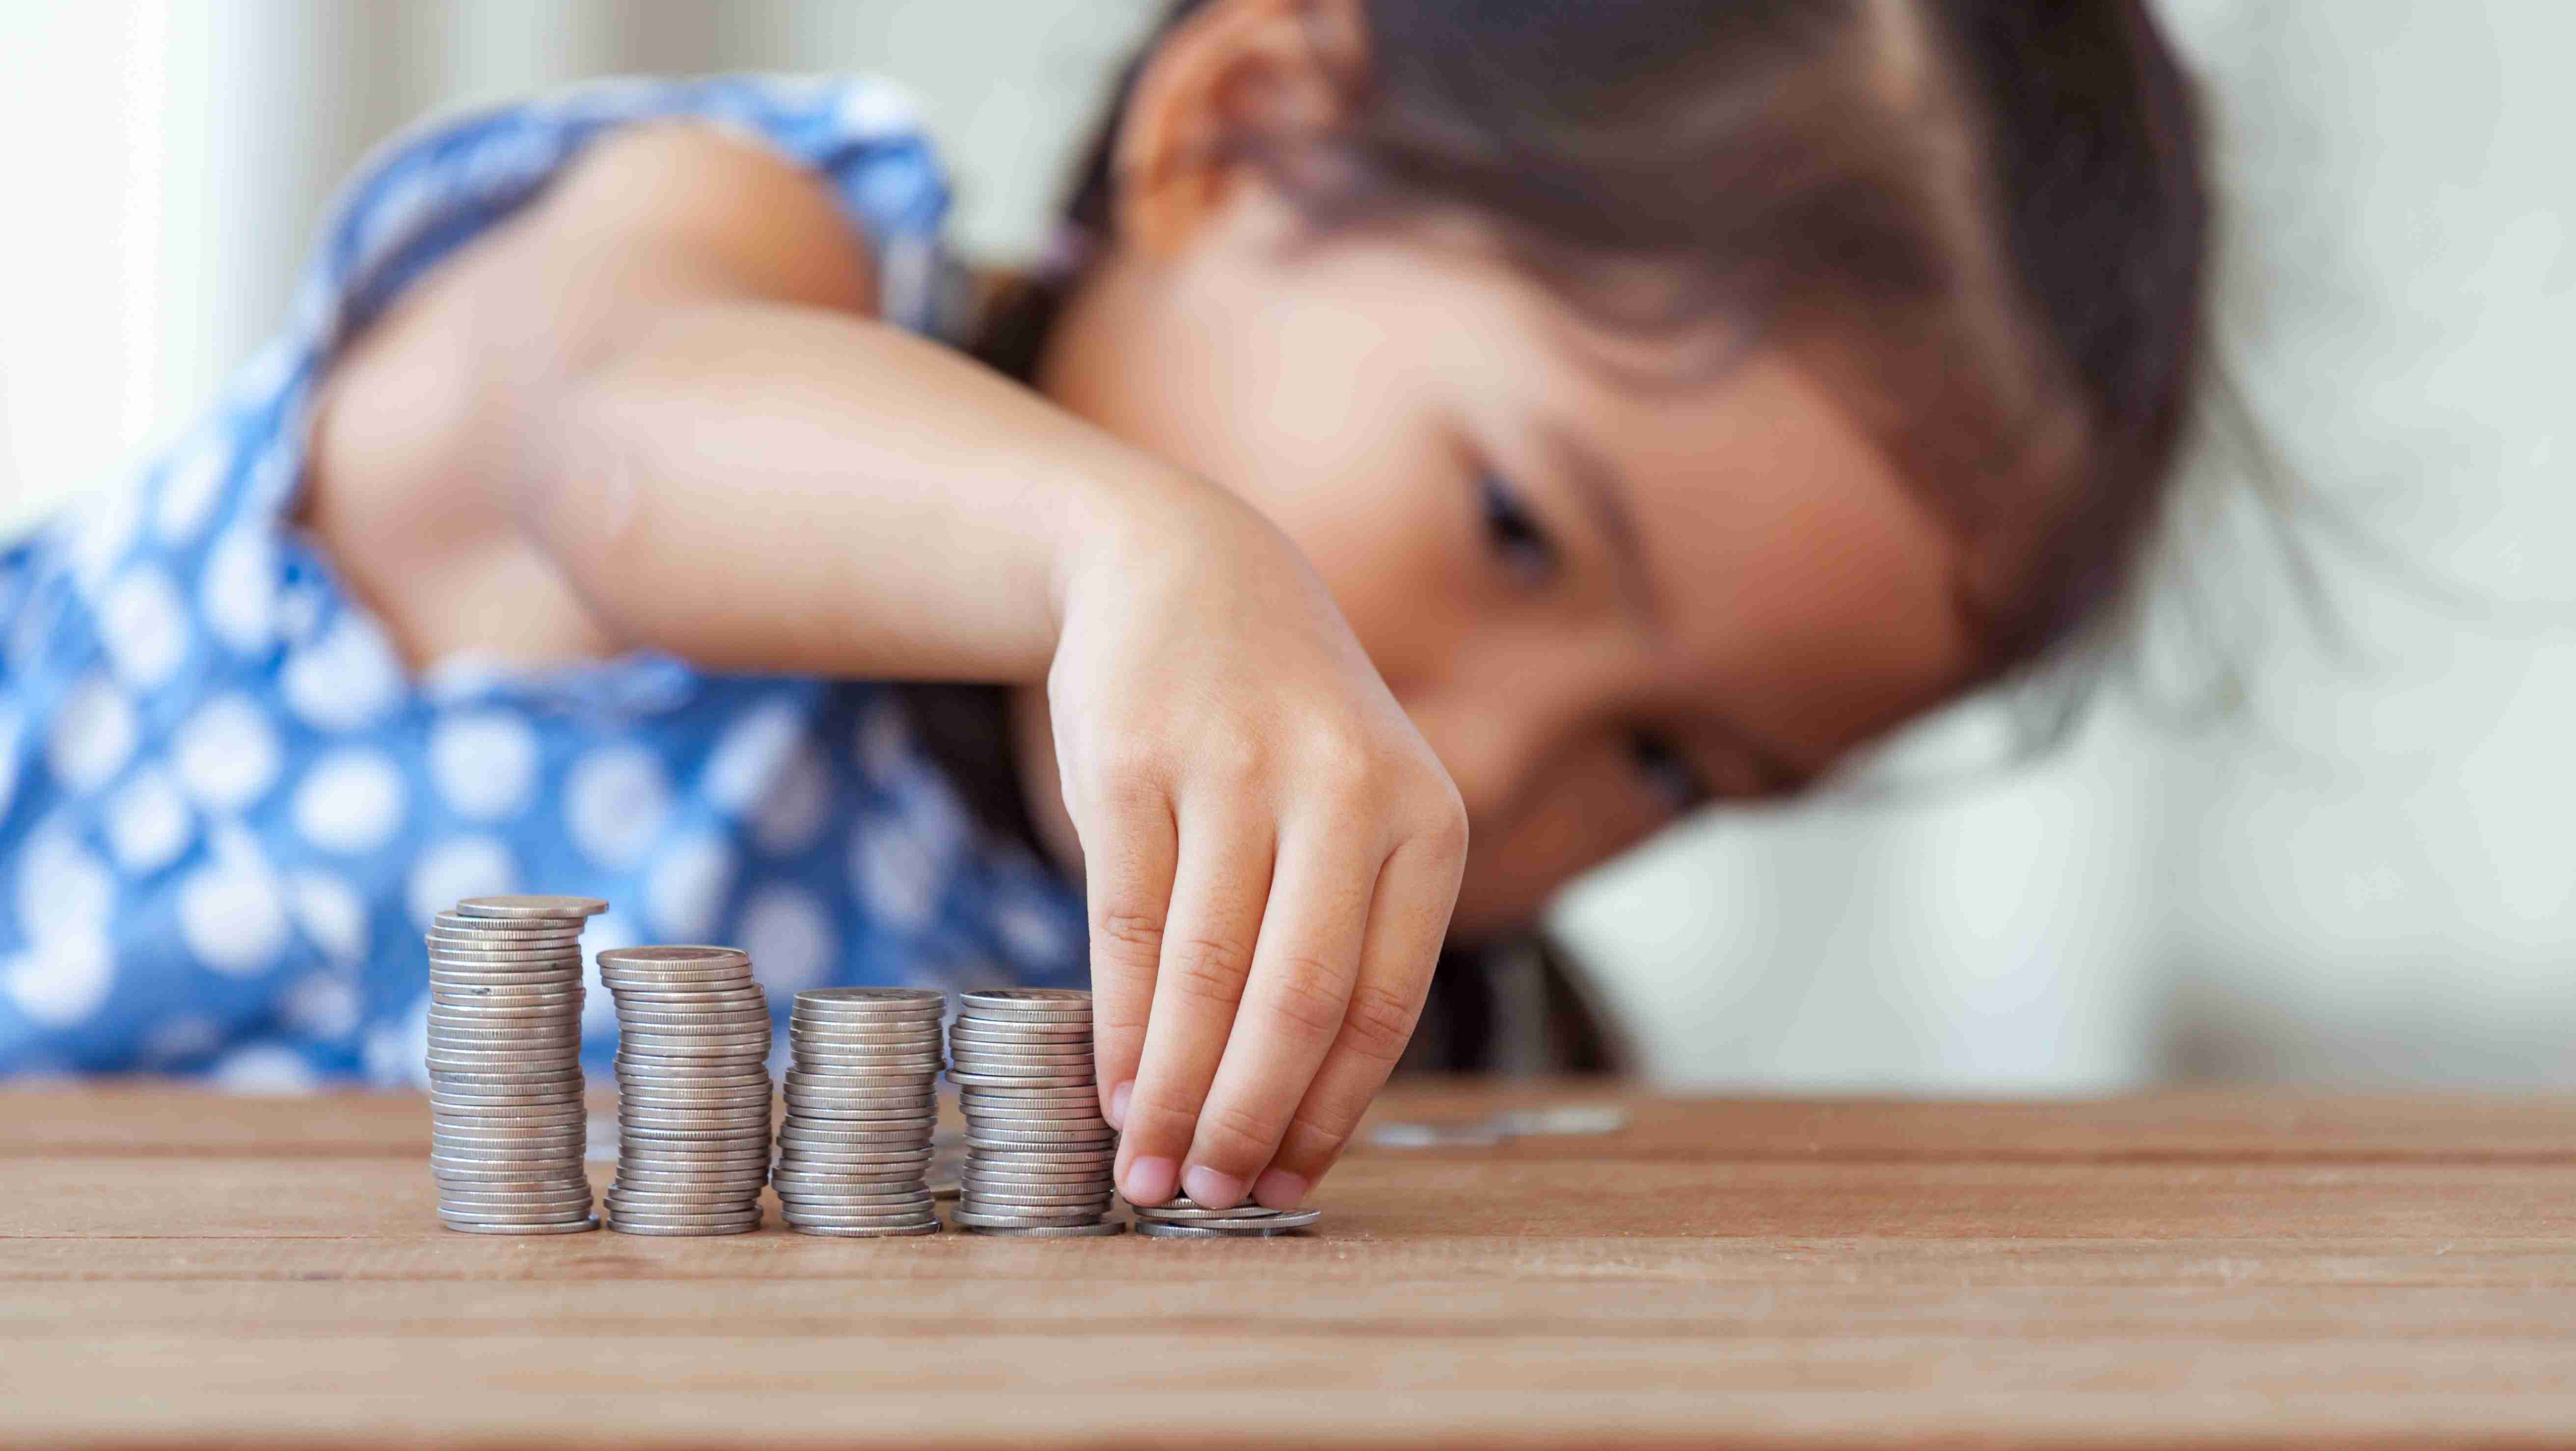 Young girl lining up stacks of coins